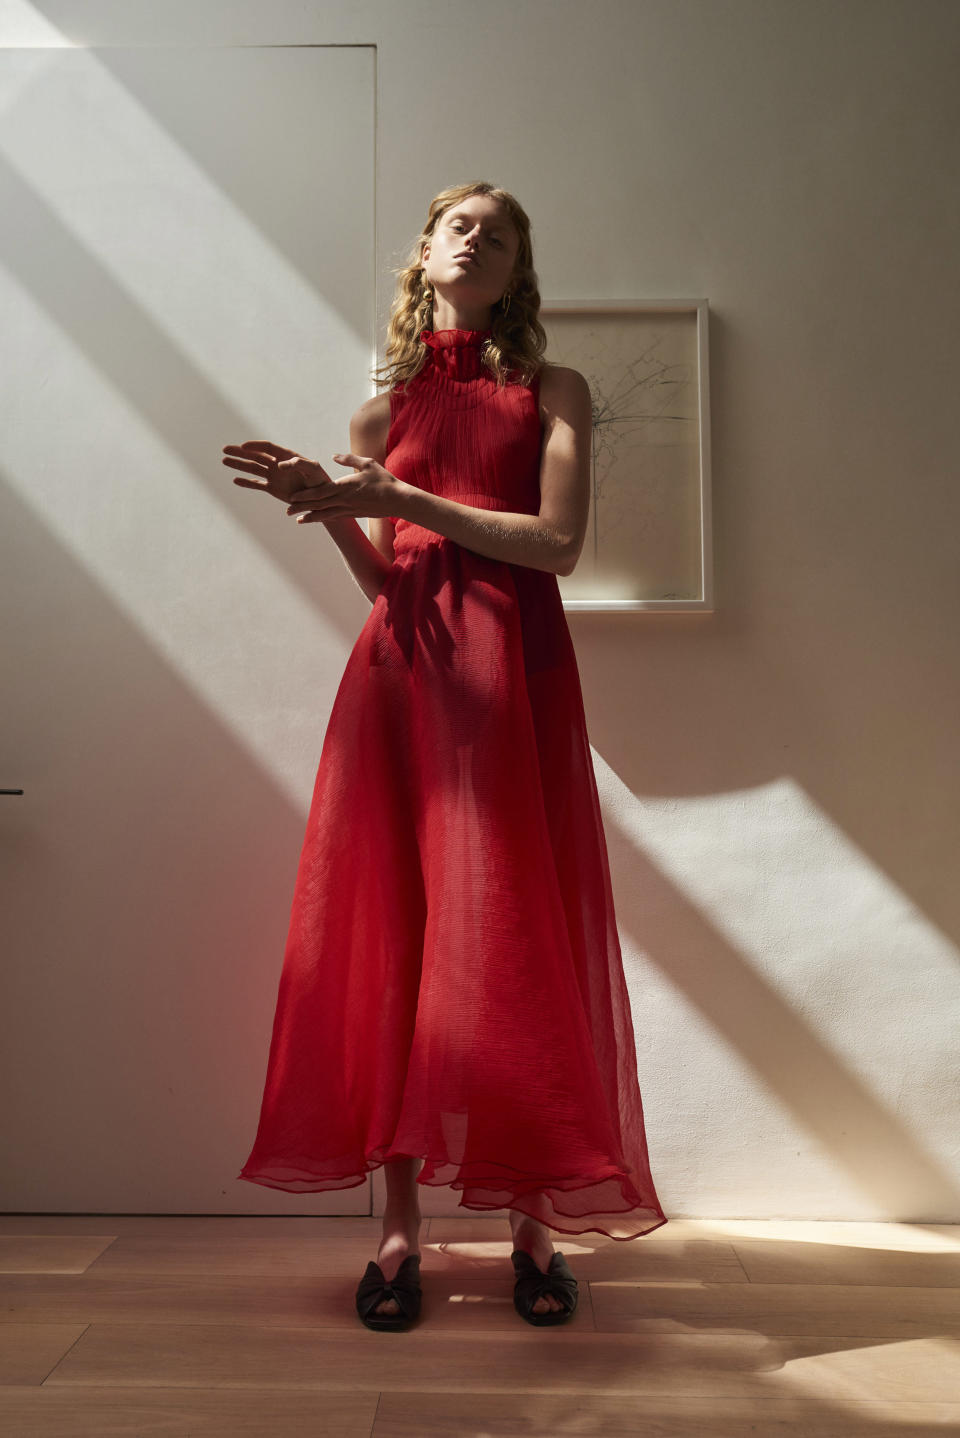 <p><i>Model wears a high-neck, red chiffon dress from the Beaufille SS18 collection. (Photo: ImaxTree) </i></p>